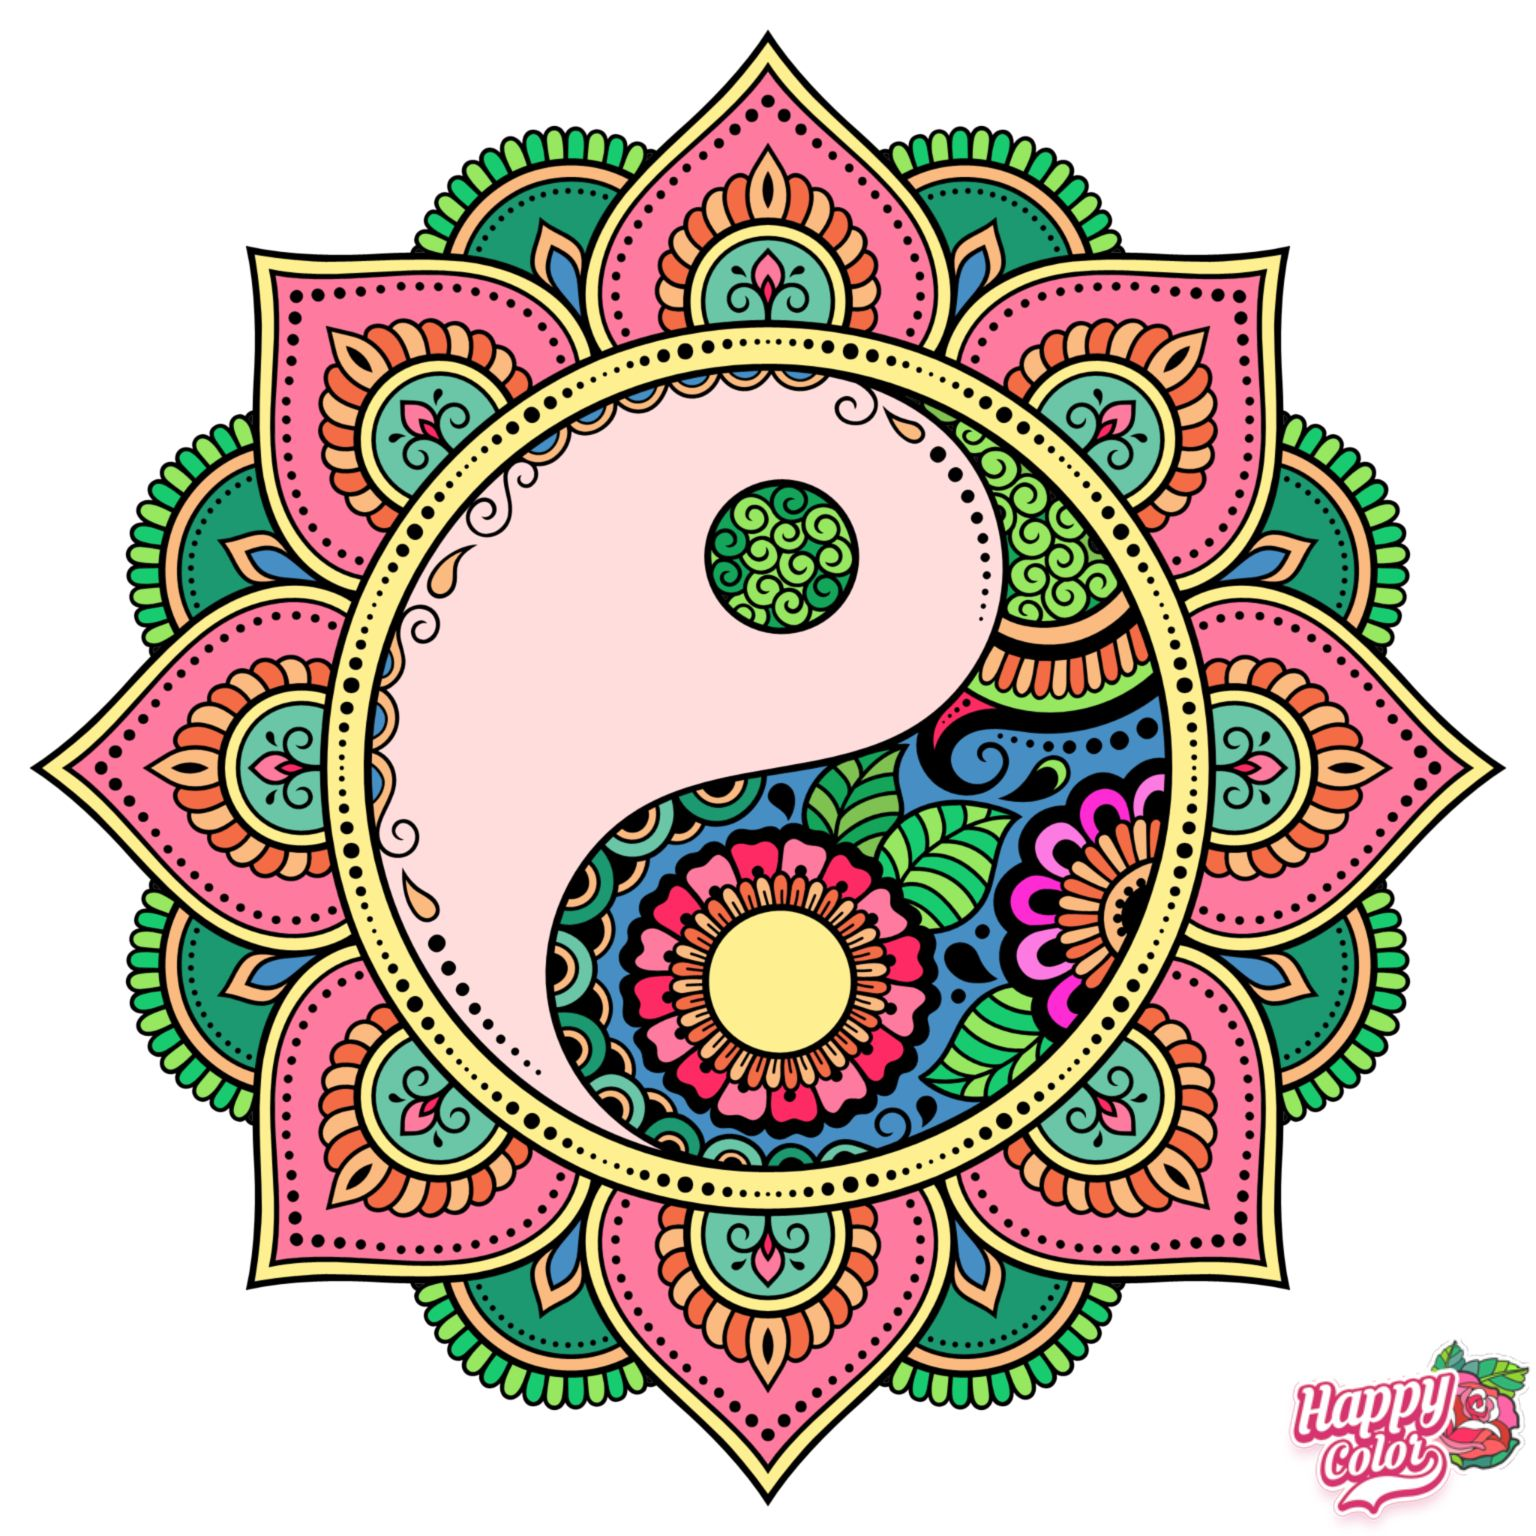 Pin By Clauduh On I Love To Color Happy Colors Colorful Art Mandala